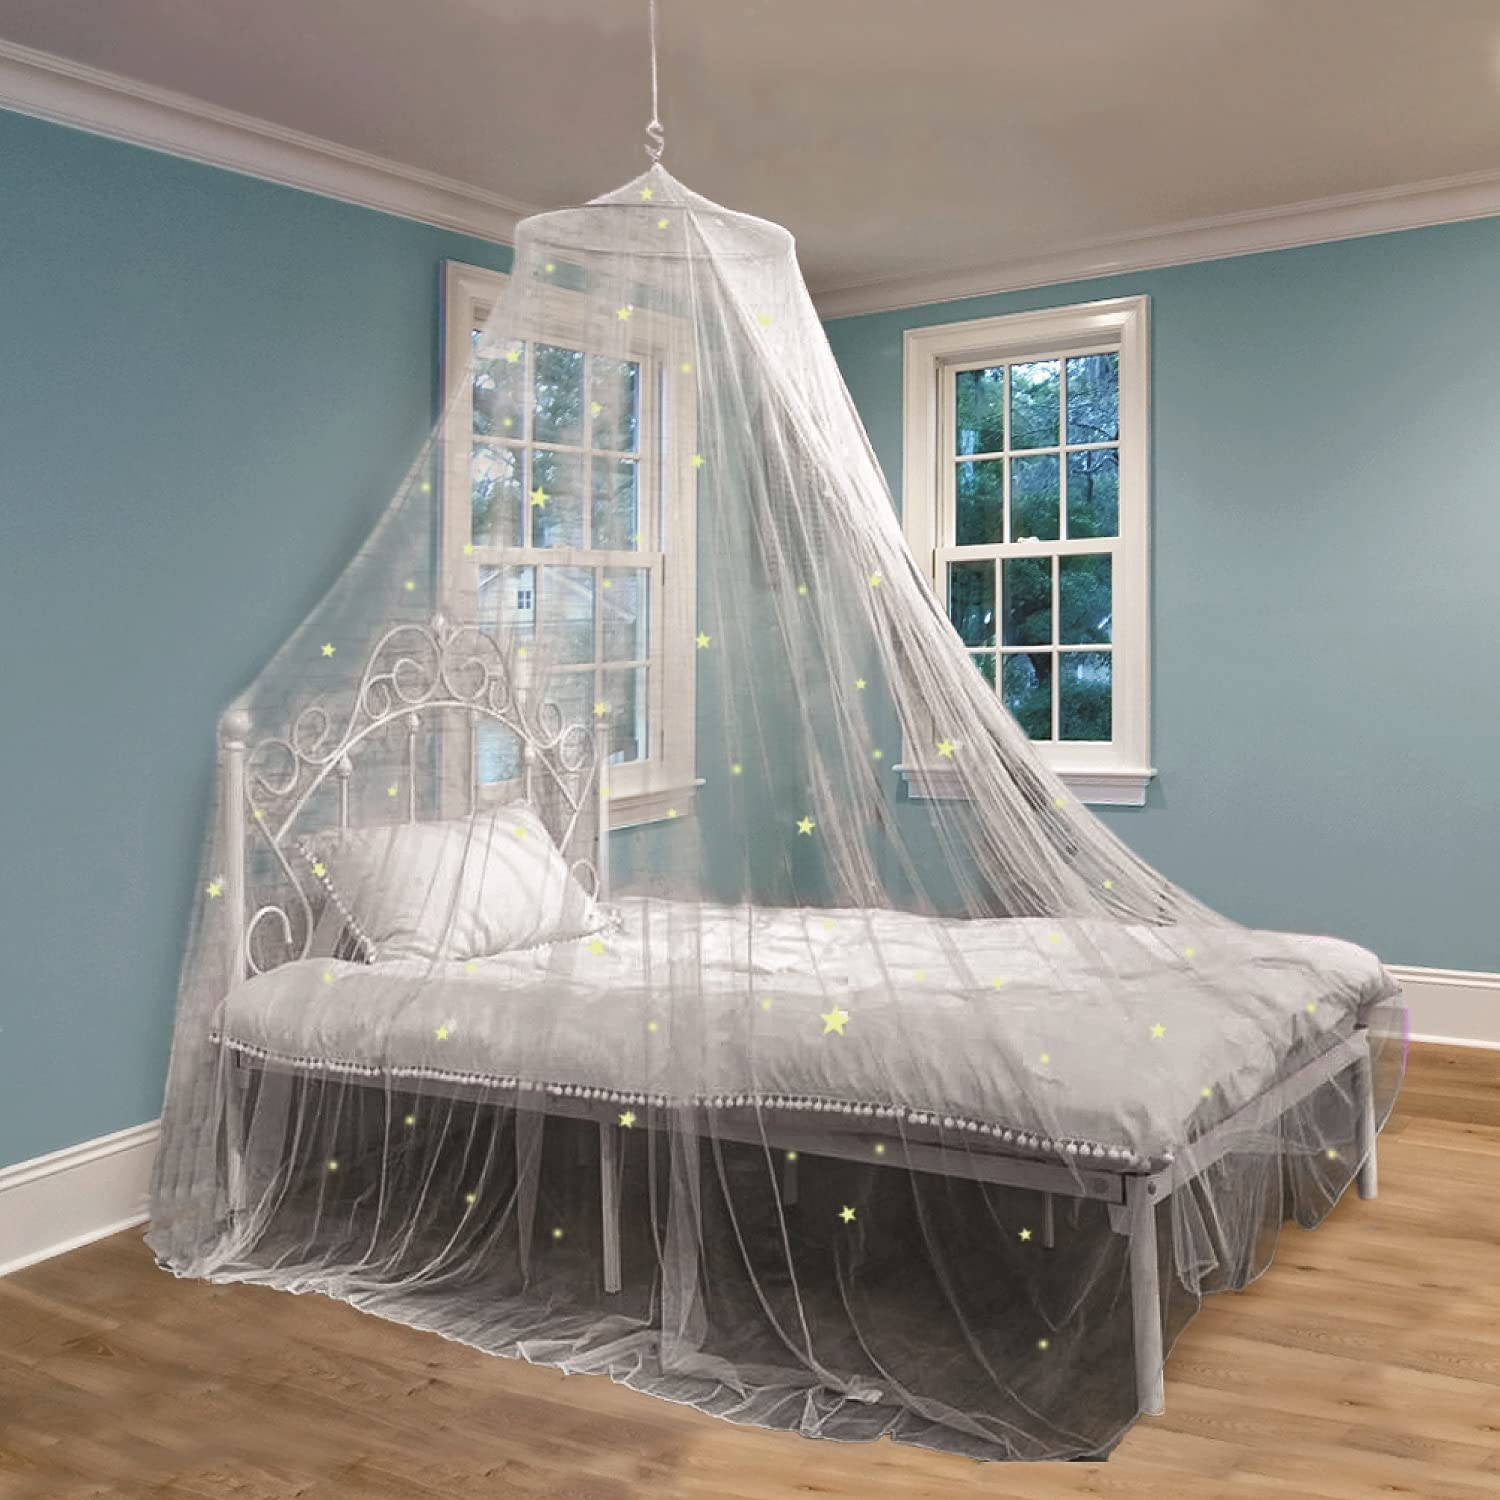 Bed Canopy with Glow in The Dark Stars for Girls, Kids and Babies, Net Use to Cover The Baby Crib, Kid Bed, Girls Bed Or Full Size Bed, Fire Retardant Fabric, White